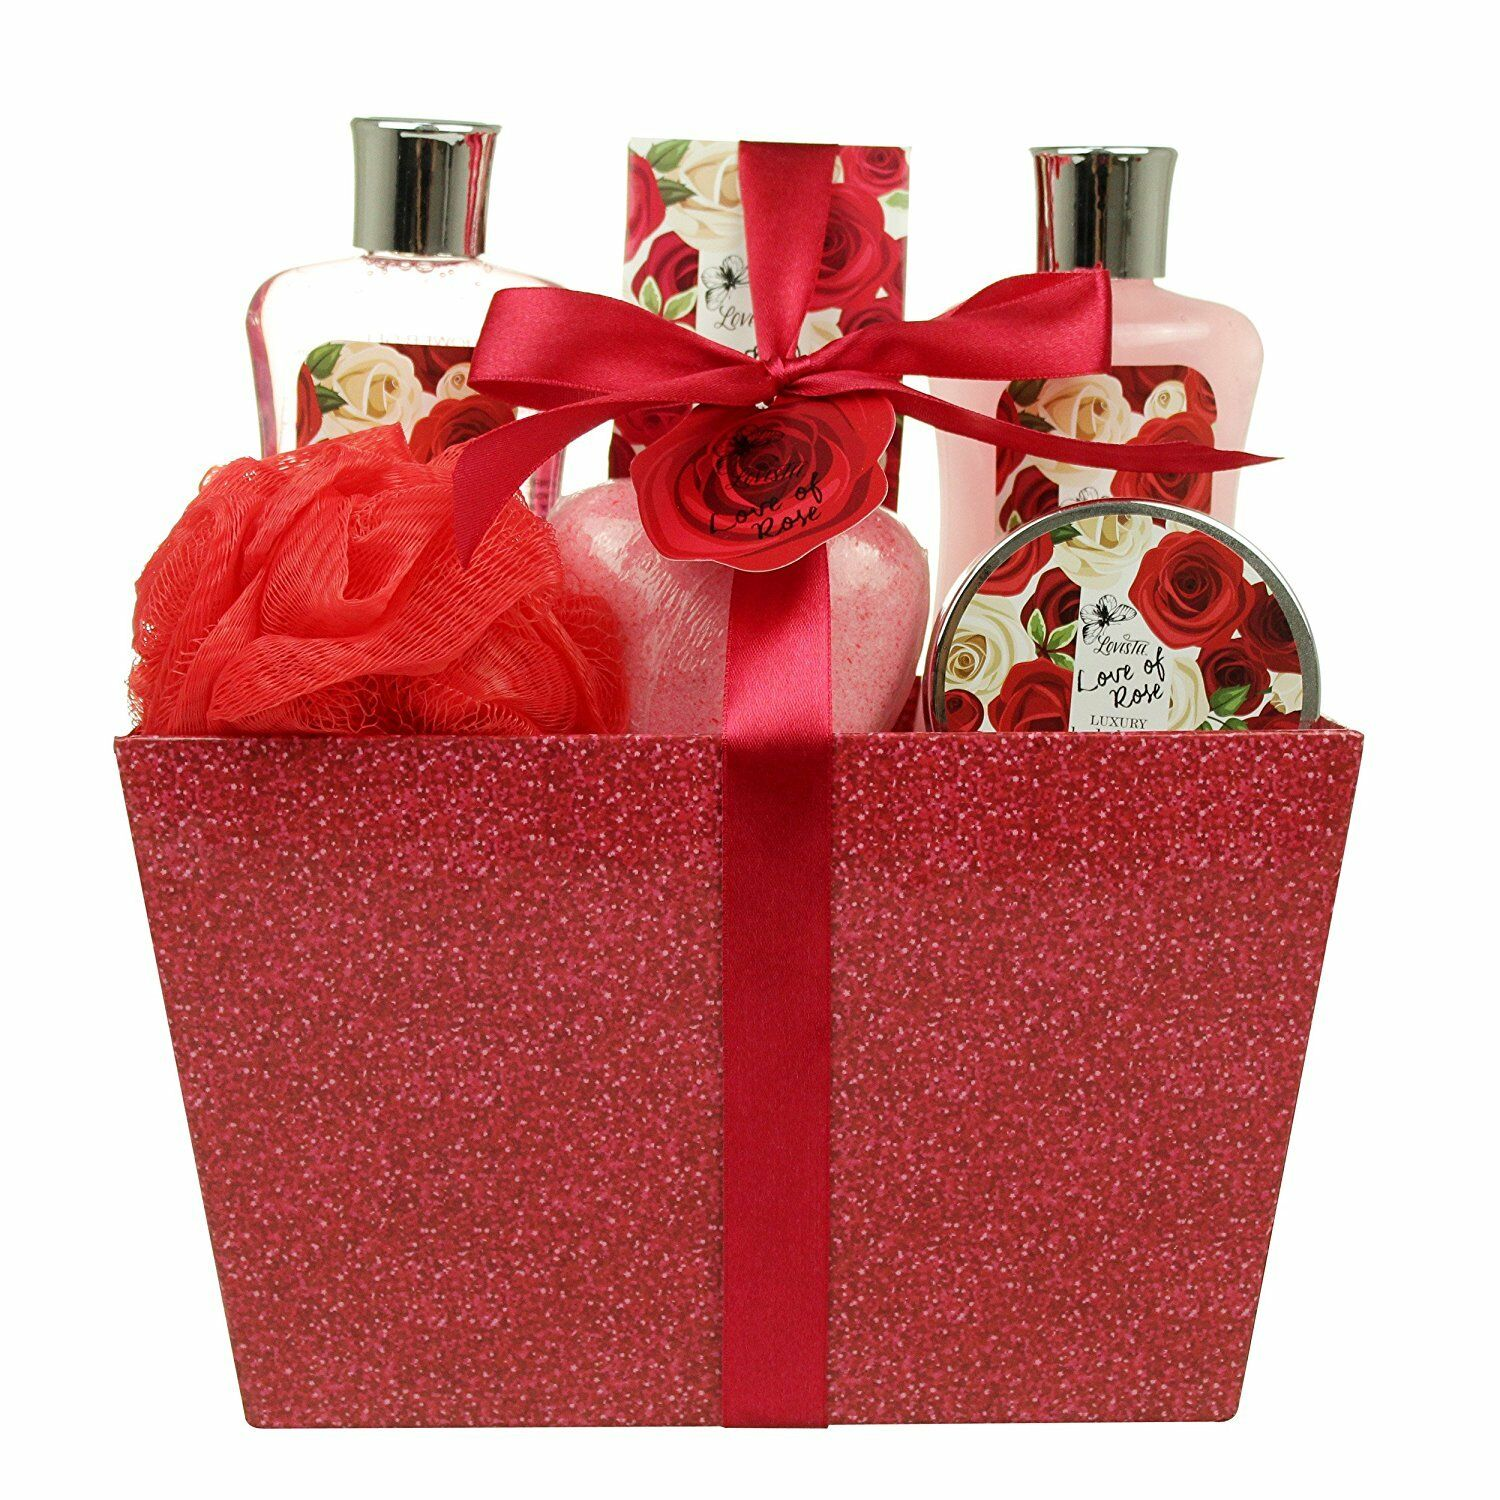 Details about Birthday Valentines Gift for Her Spa Basket Bath u0026 Body Love of Rose Luxury Set  sc 1 st  eBay & Birthday Valentines Gift for Her Spa Basket Bath u0026 Body Love of Rose ...